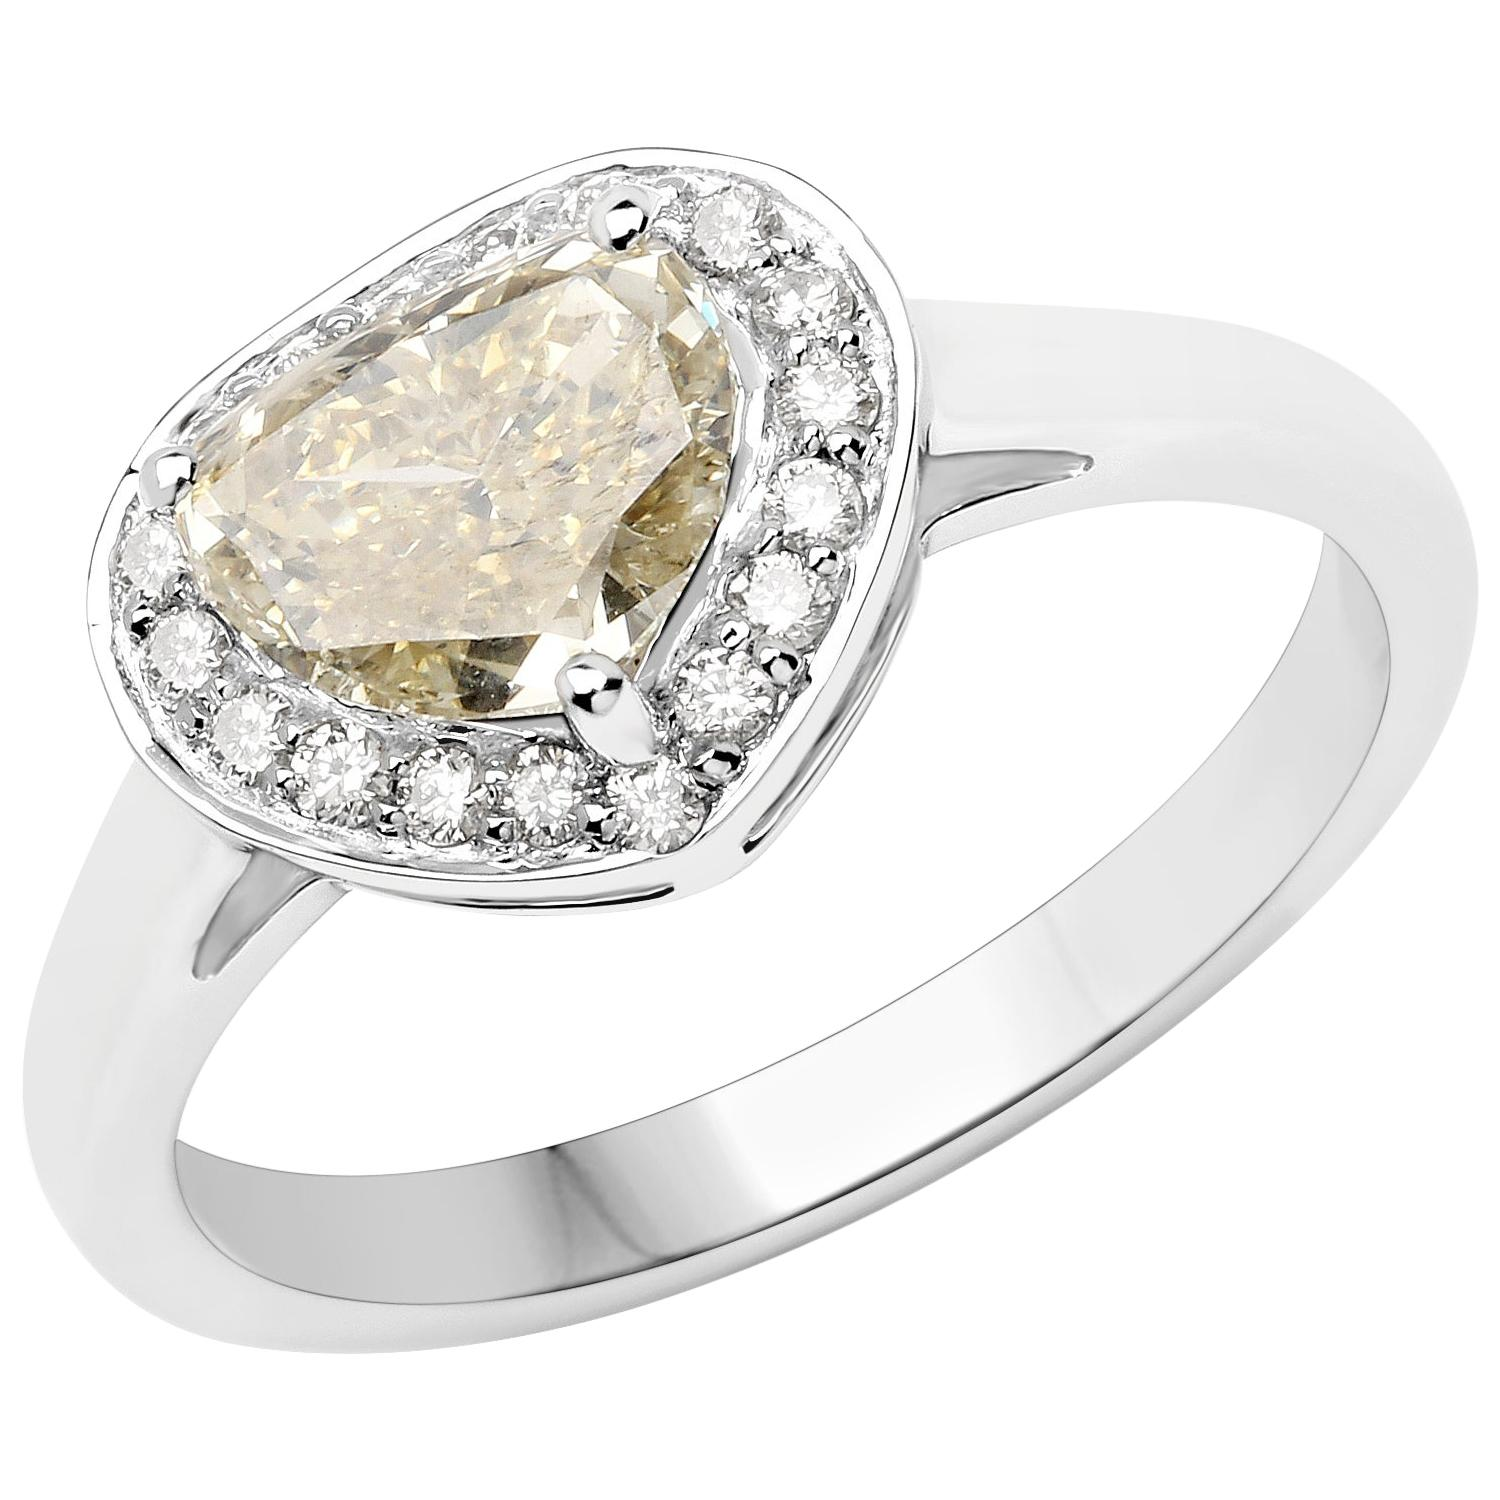 84f8a8c90d0d6f Contemporary Engagement Rings - 1,888 For Sale at 1stdibs